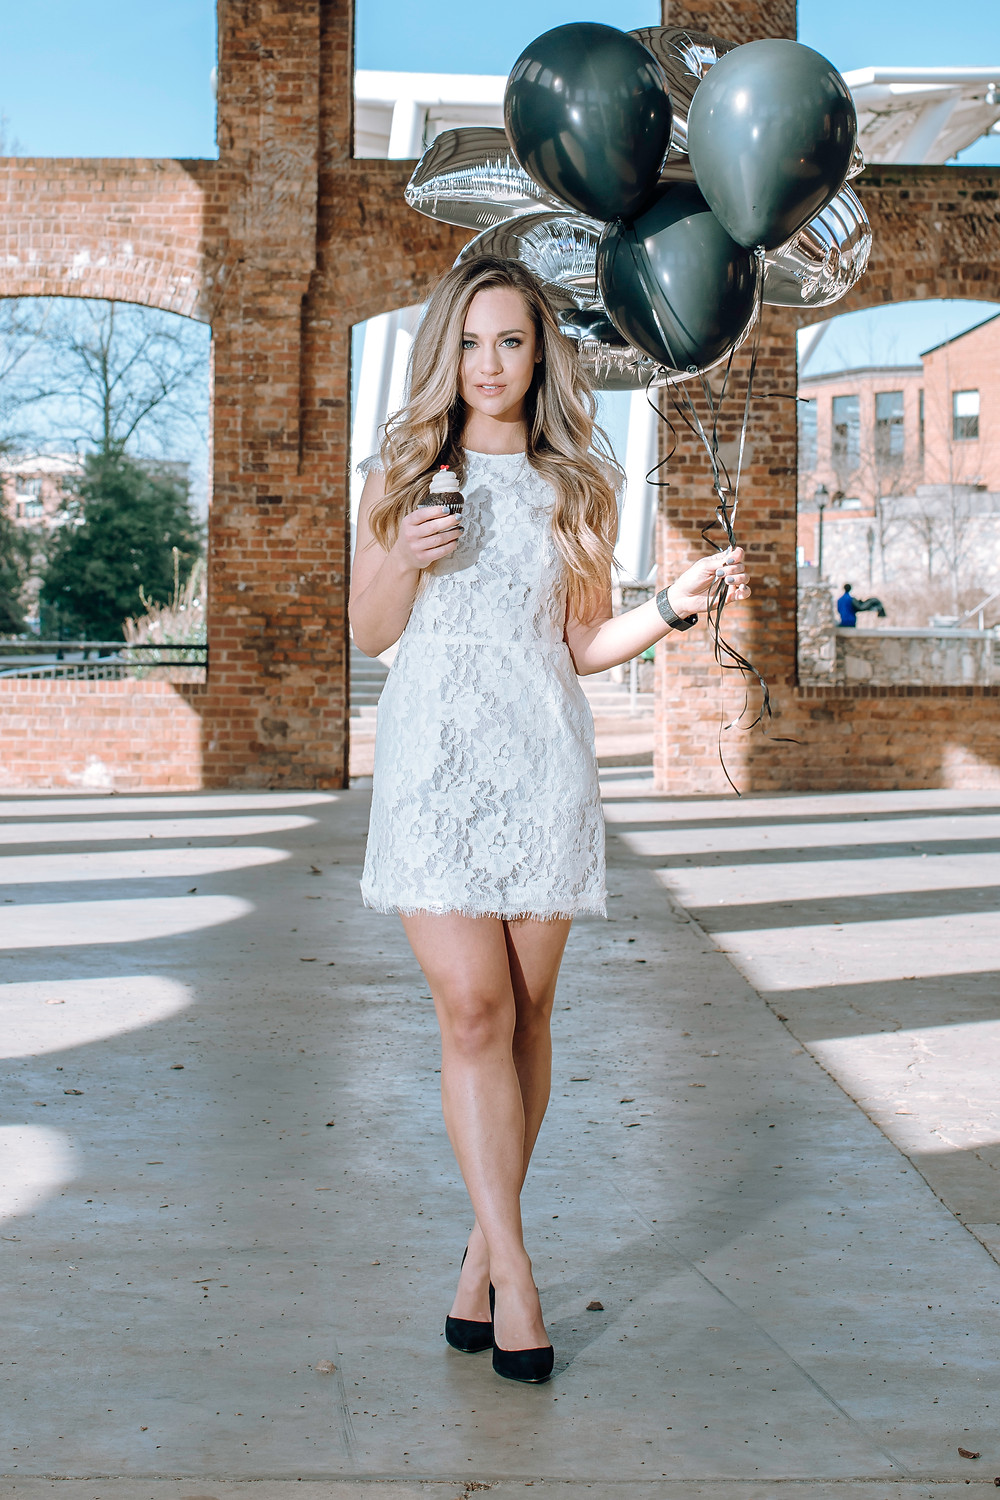 A woman in a lace white dress is standing crossed leg whilst holding a cupcake in one hand and balloons in the other hand.